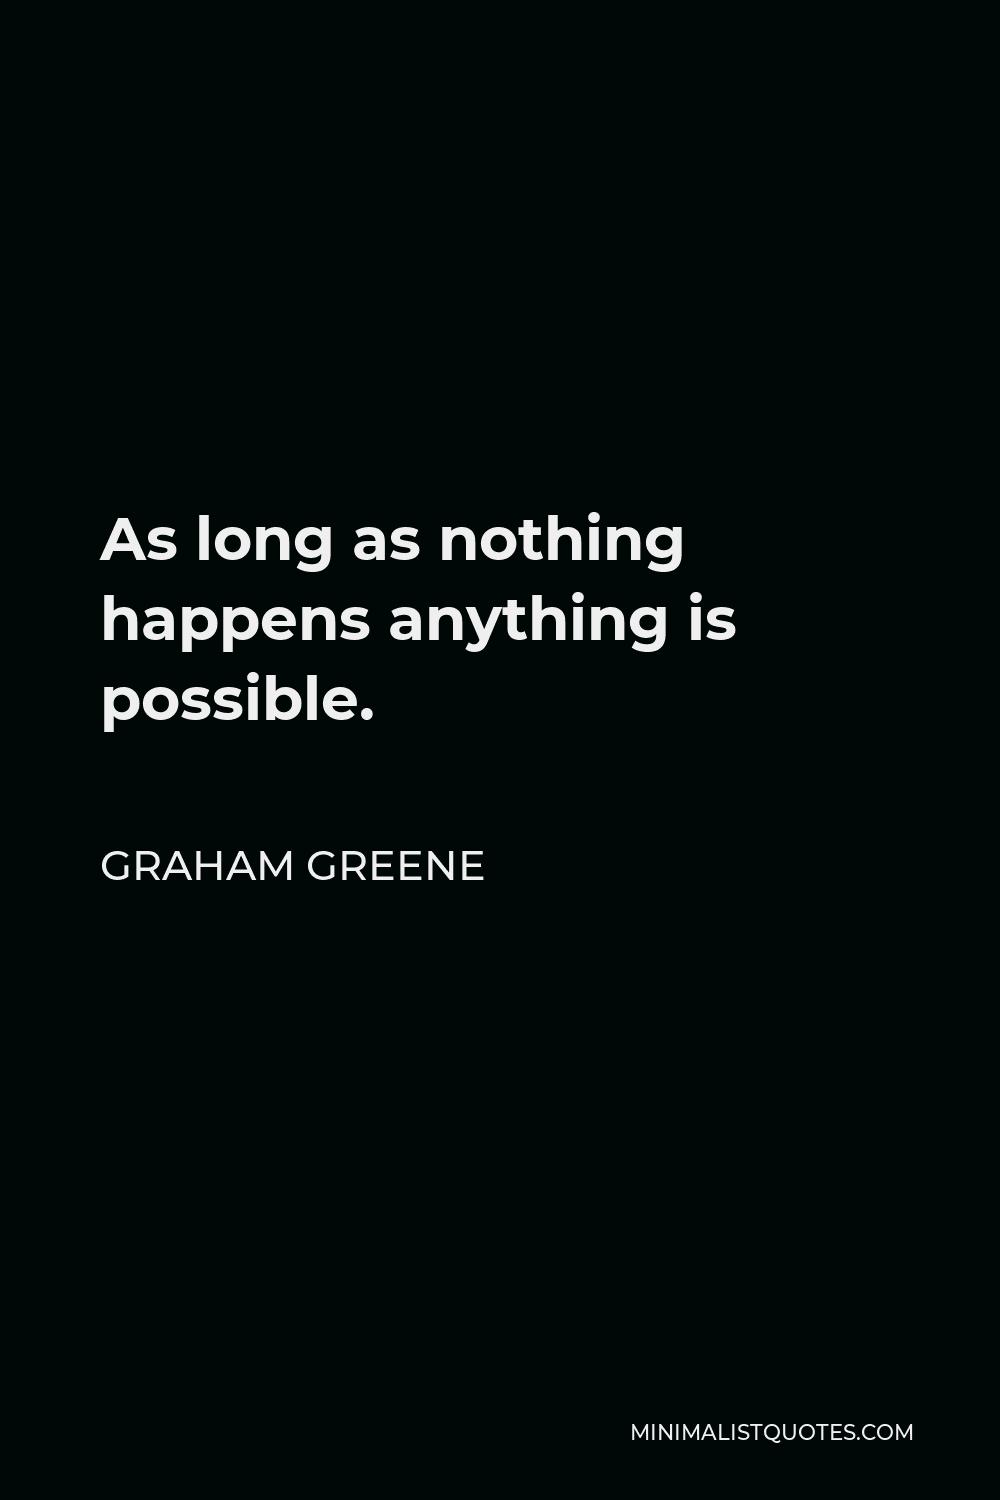 Graham Greene Quote - As long as nothing happens anything is possible.